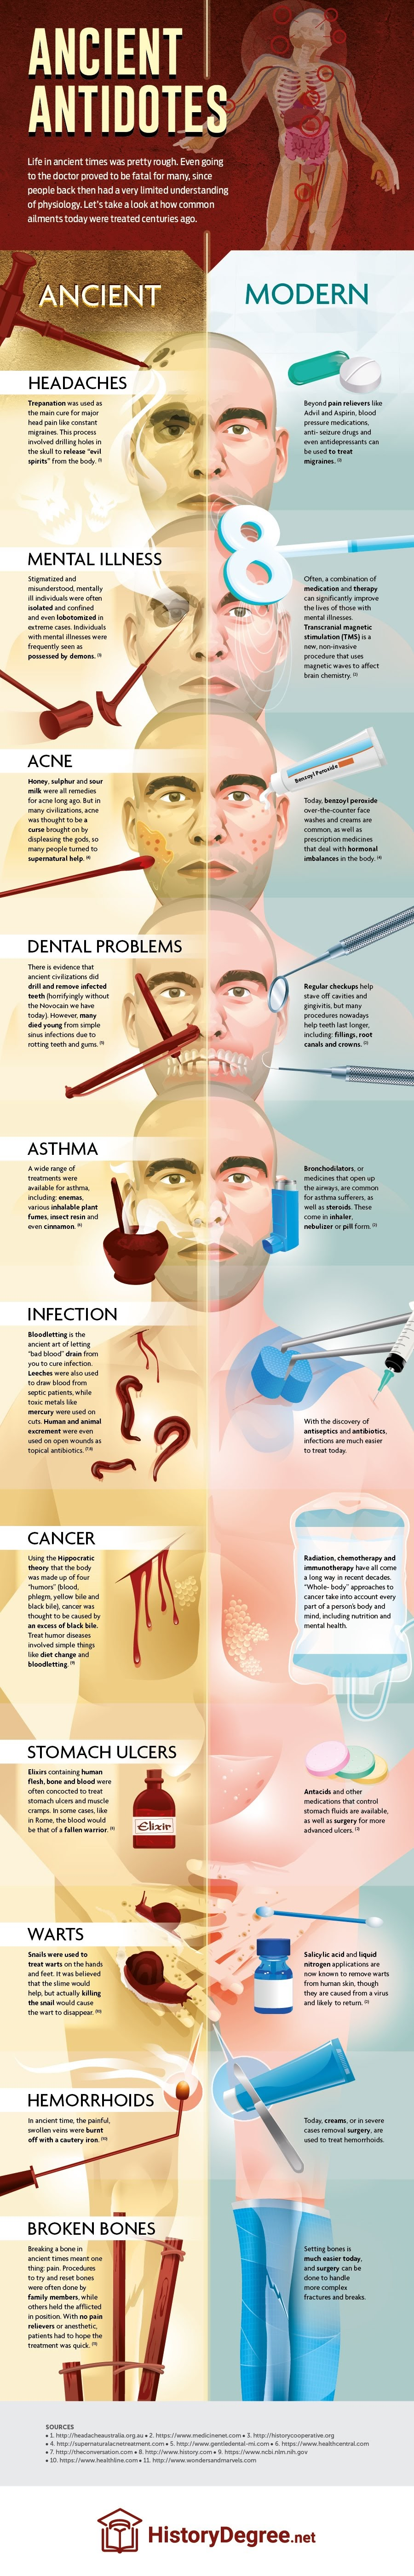 Ancient Antidotes #Infographic